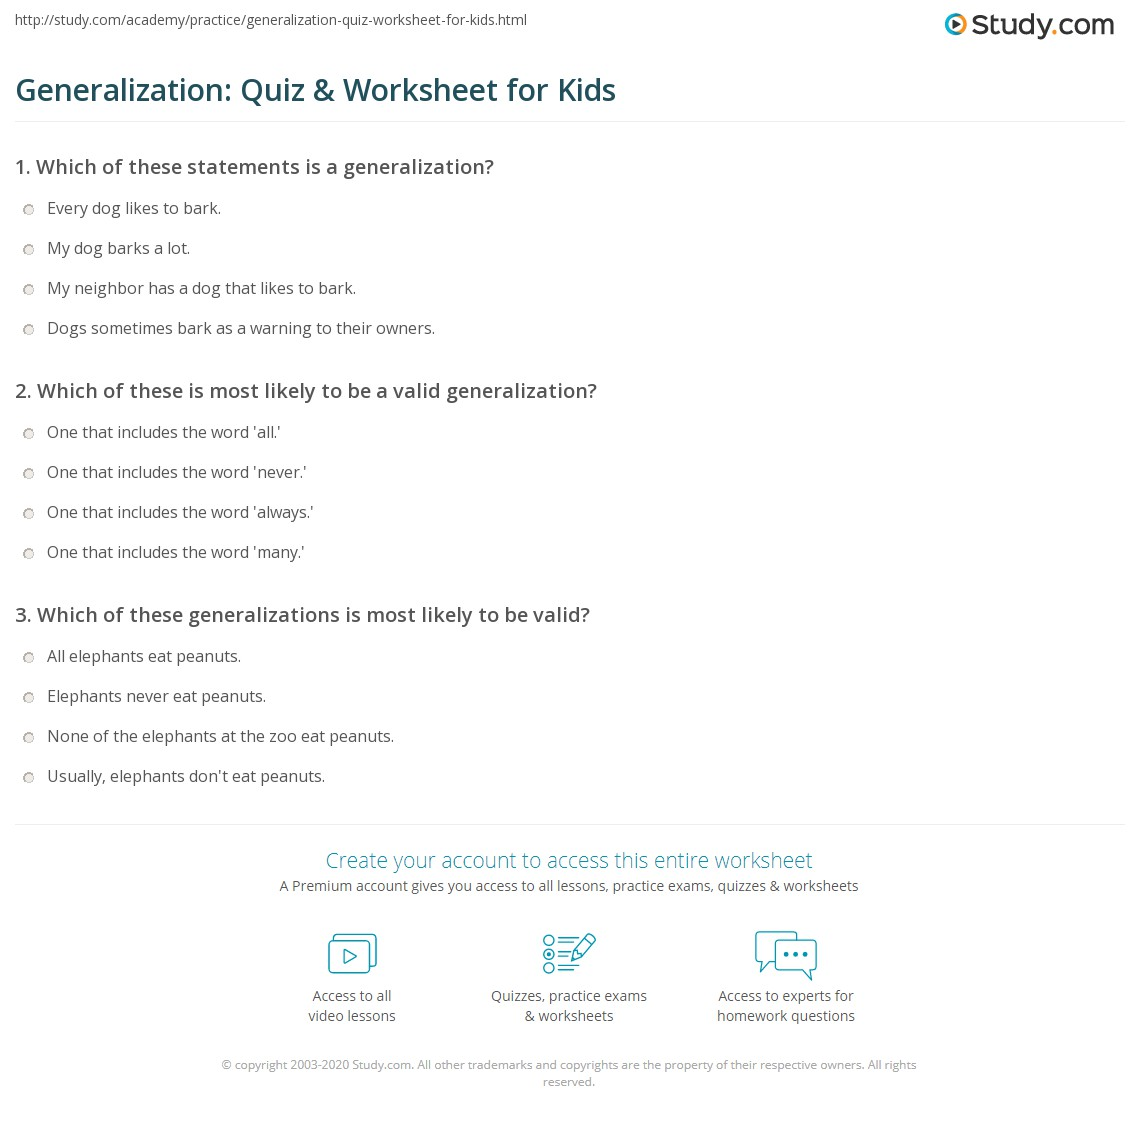 Generalization: Quiz & Worksheet for Kids | Study com